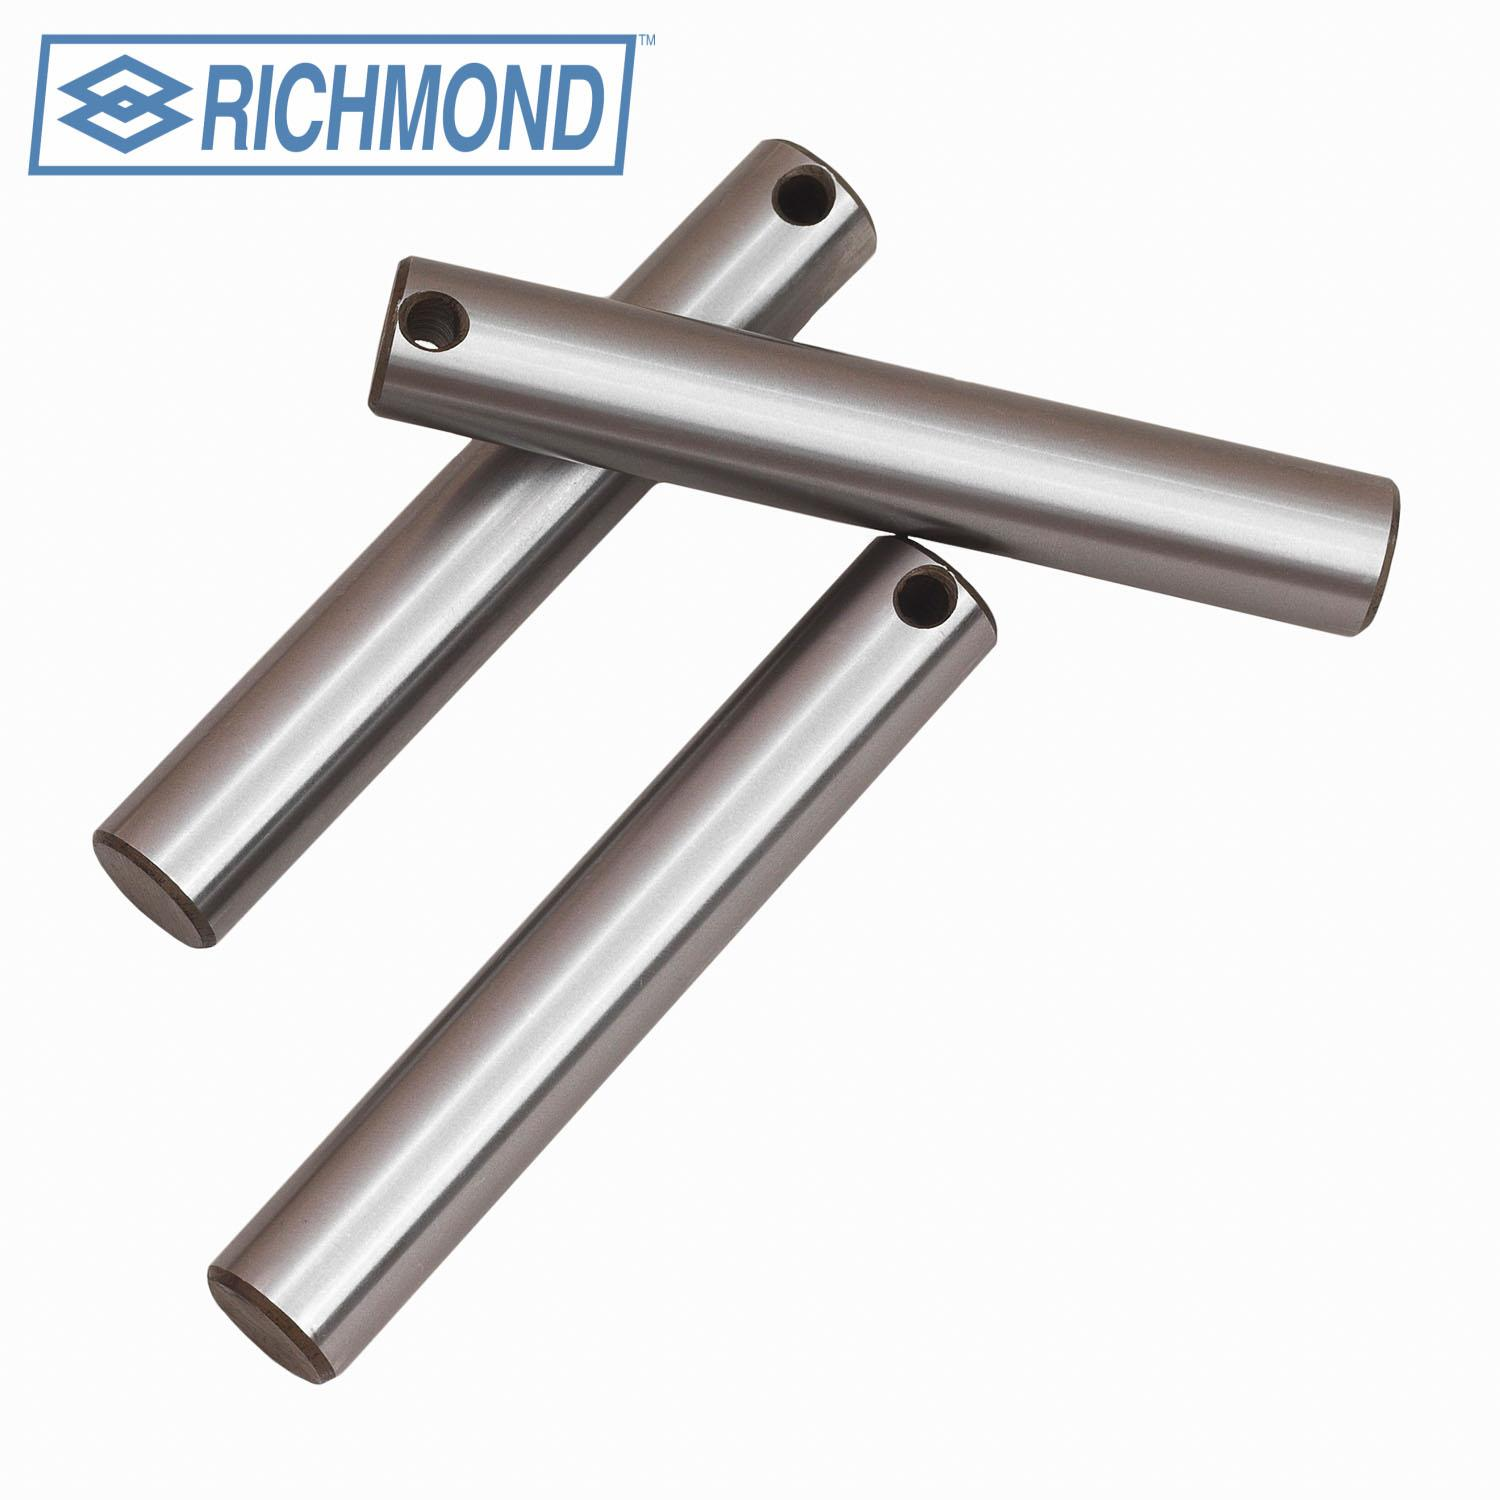 CSPGM82 Richmond Gear Differential Cross Pin For Use With GM 8.2 Inch